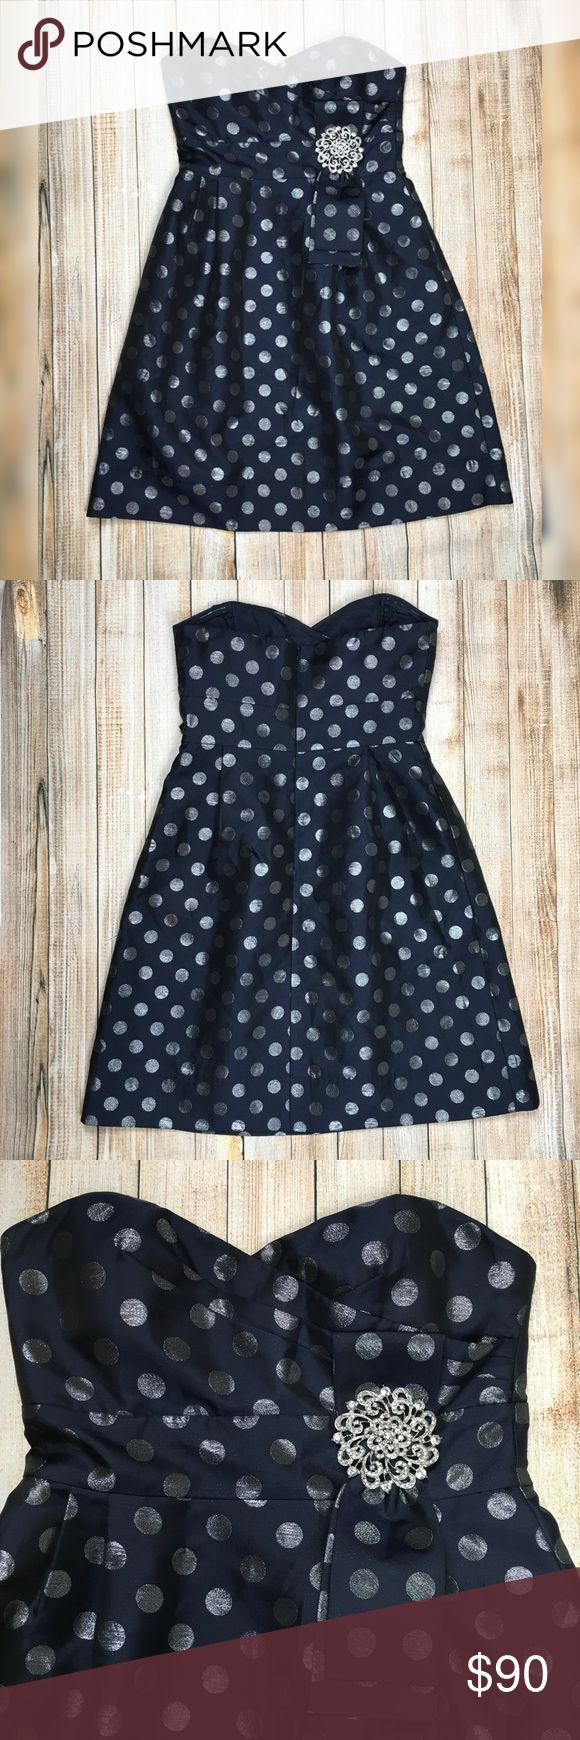 Eliza J polka dot party dress Eliza J polka dot fit and flare dress. Strapless sweetheart neckline with rhinestone embellishment, the silver polka dots shimmer just enough to grab your attention against the navy. Like new condition, no flaws. Approximate measurements provided in photos. OFFERS ENCOURAGED!  Tags: military ball, homecoming, formal, fancy, pretty, girly, flirty, date night, wedding guest, bridesmaid, bow, navy blue, holidays, special occasion, New Year's Eve Eliza J Dresses…